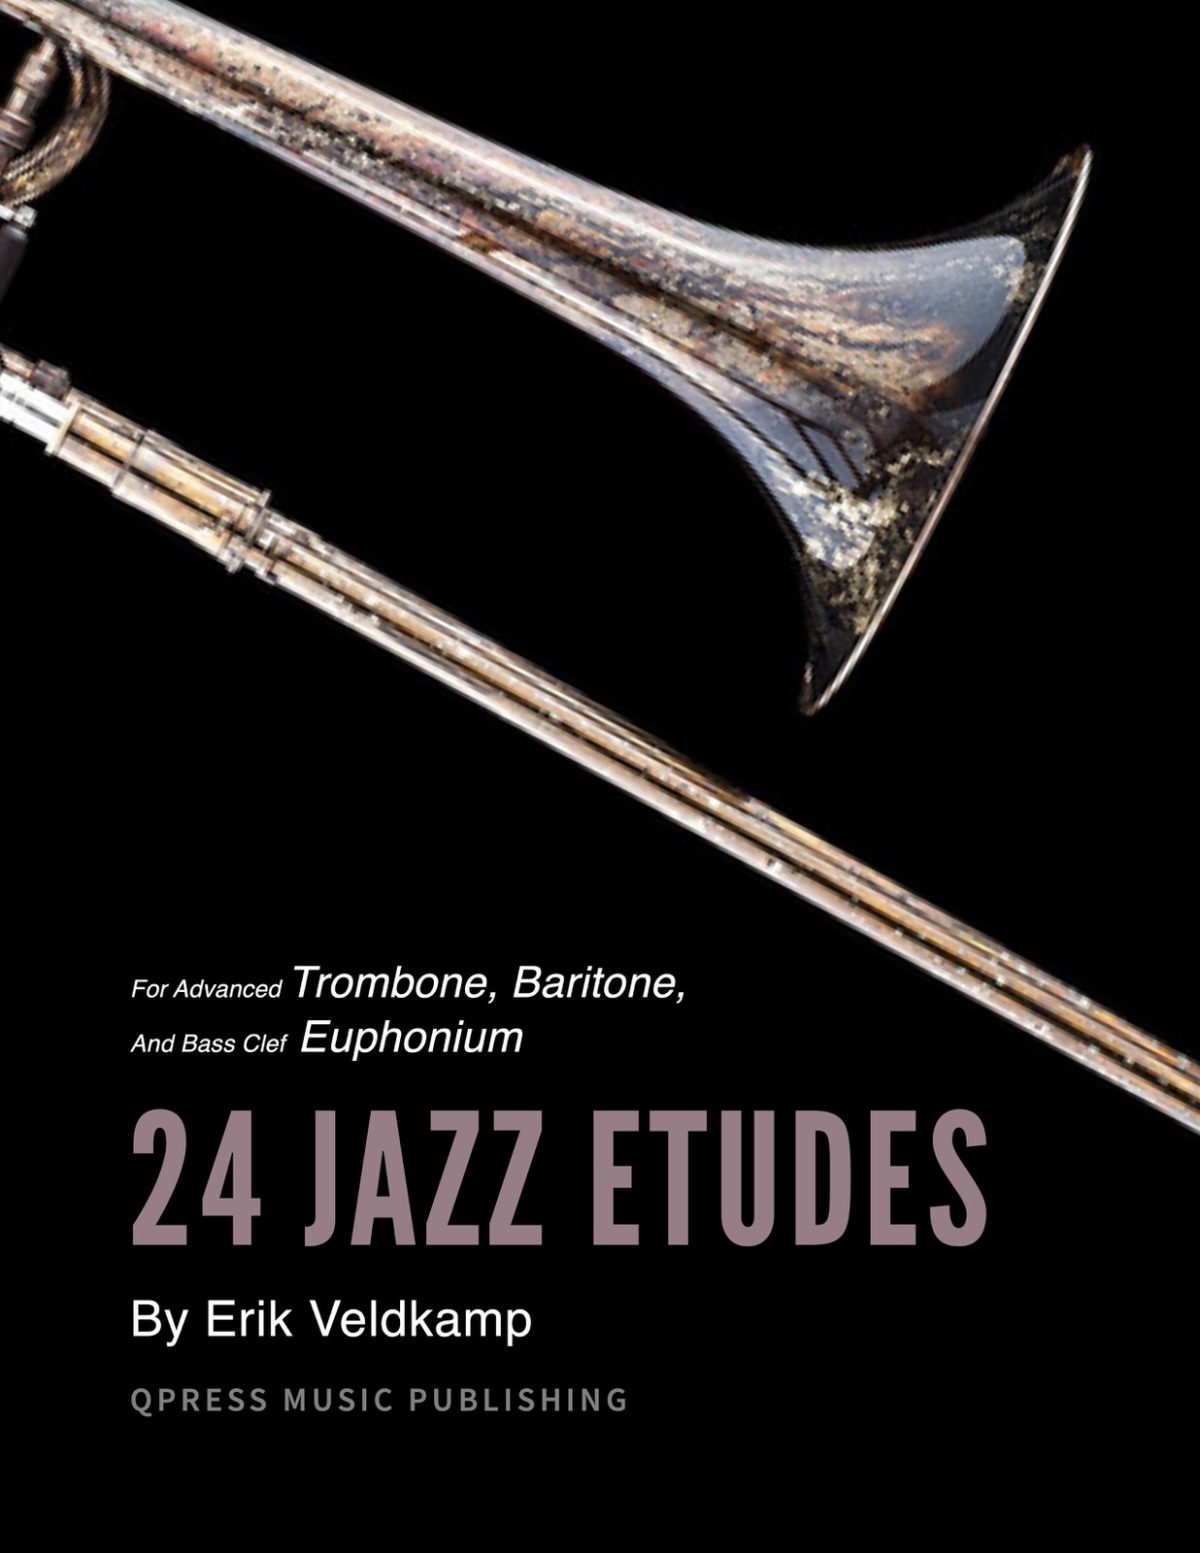 Veldkamp, 24 Jazz Etudes for Trombone-p01